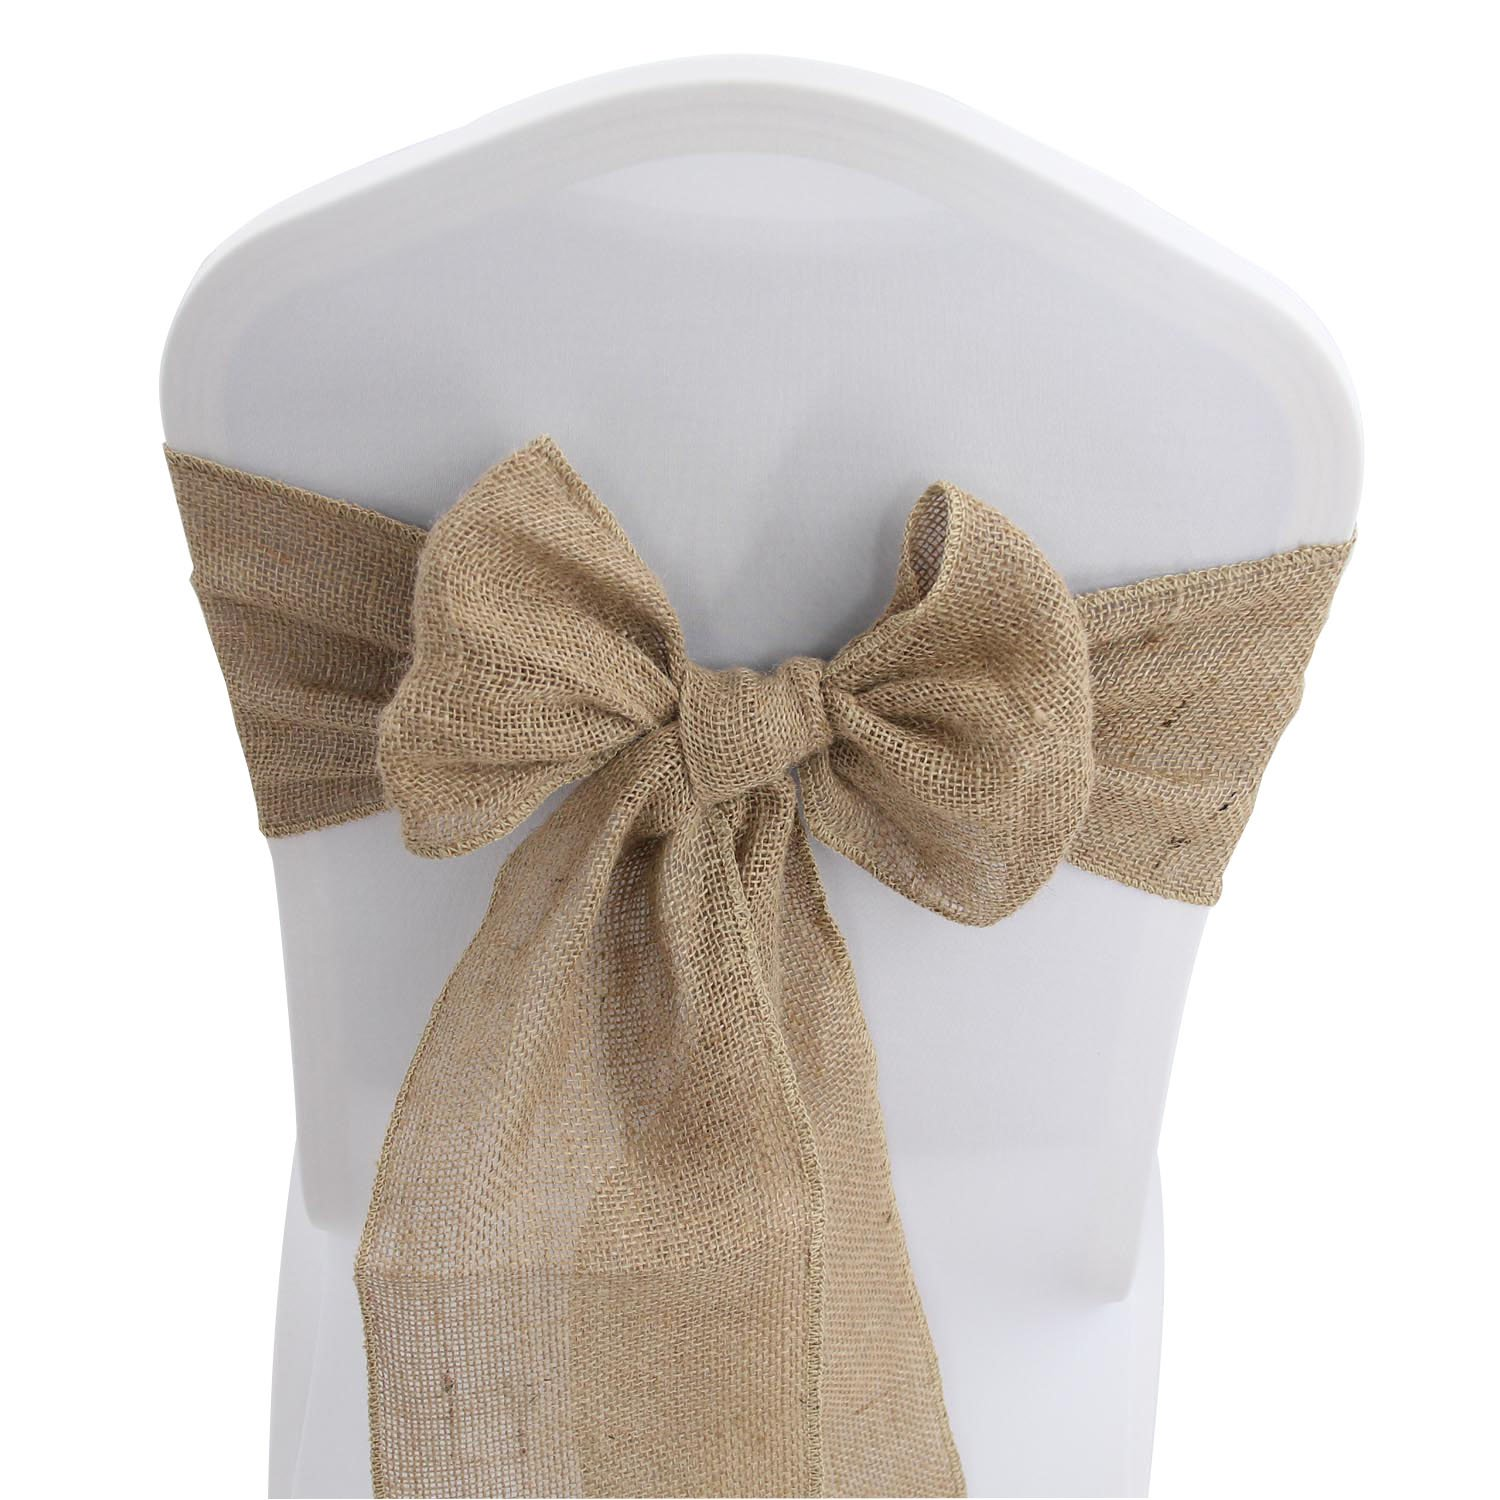 Burlap Hessian Chair Sashes Bows - 100 PCS Natural Banquet Wedding Party Event Decoration Chair Ties (7'' x 108'',100)